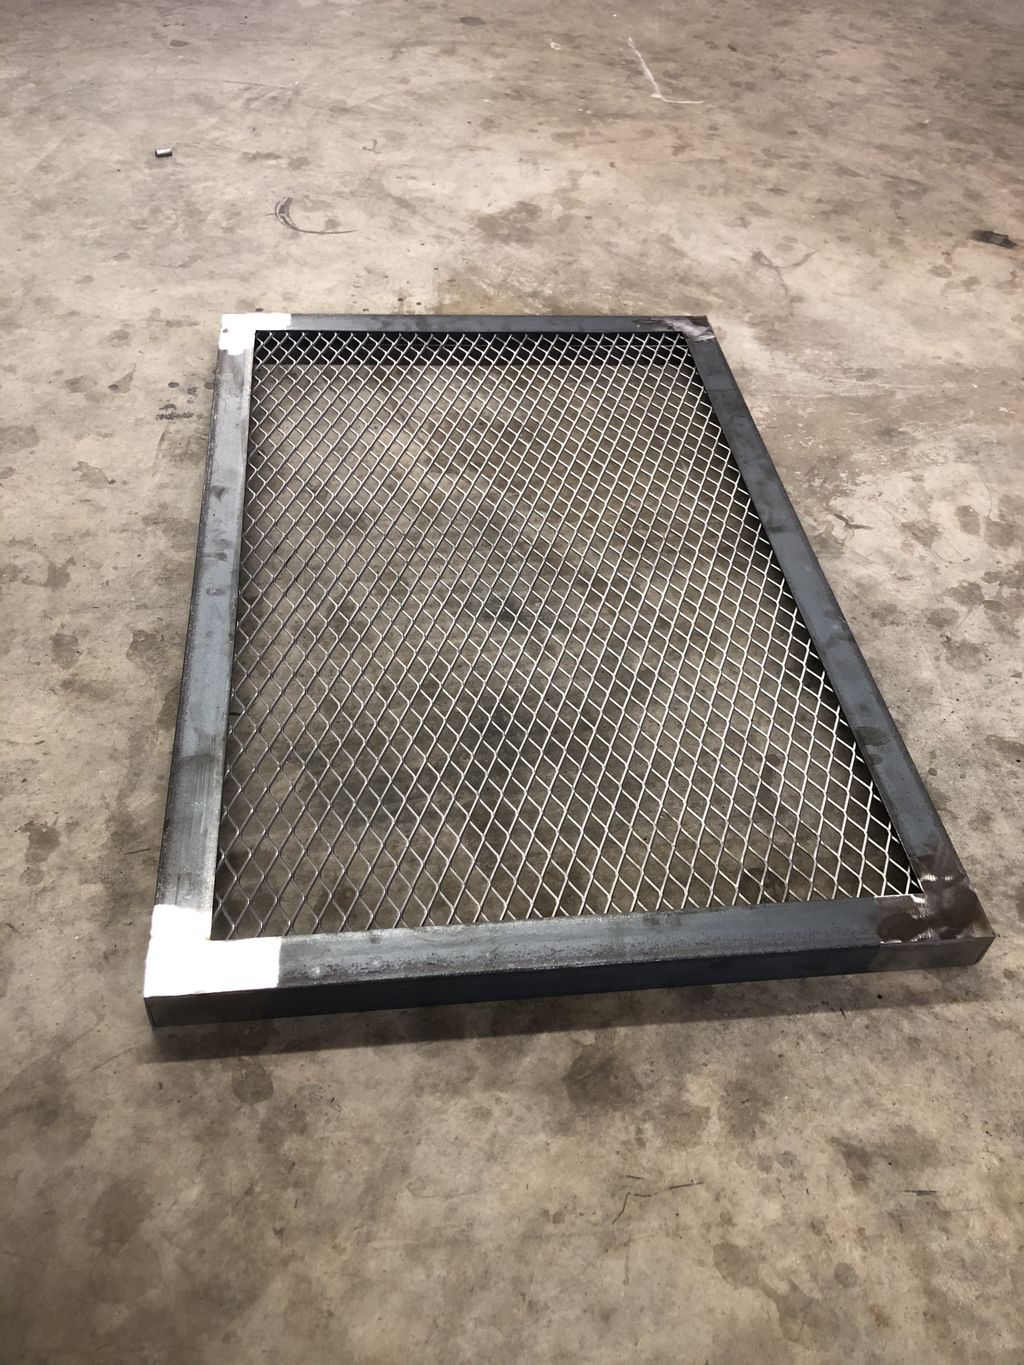 Protective screens fabricated and installed